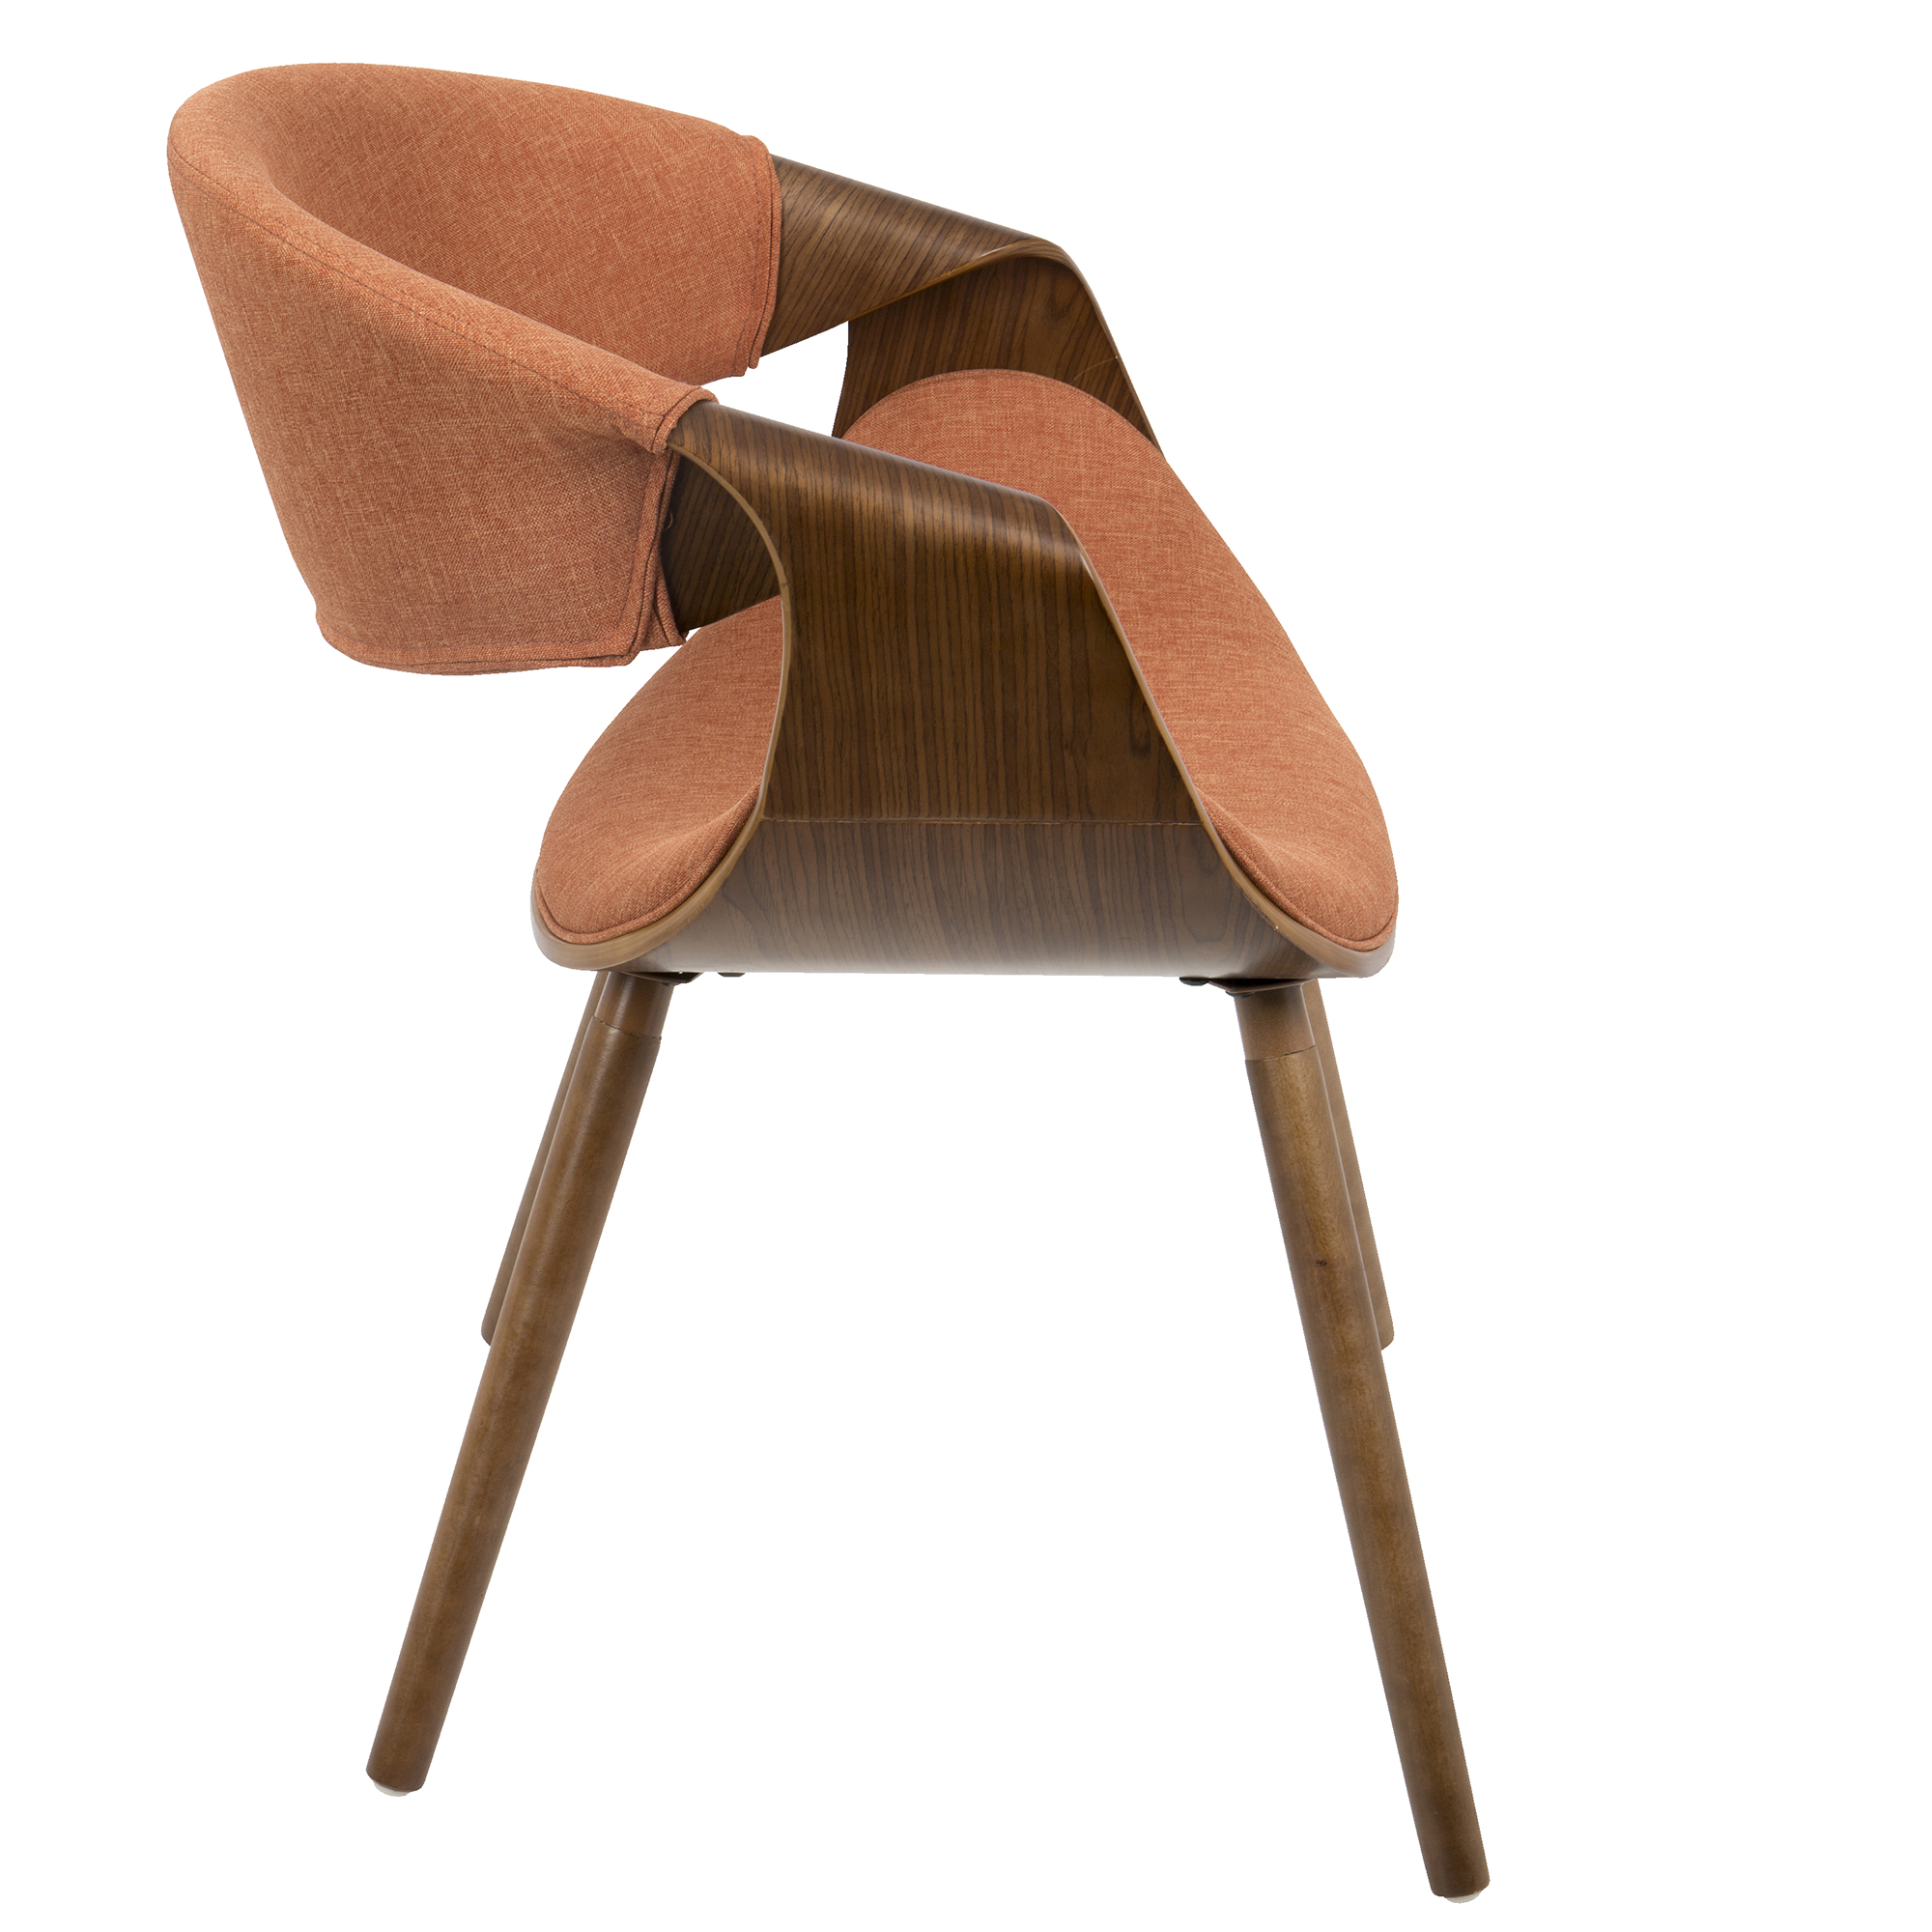 Curvo Mid-Century Modern Dining/Accent Chair in Walnut and Orange Fabric by LumiSource